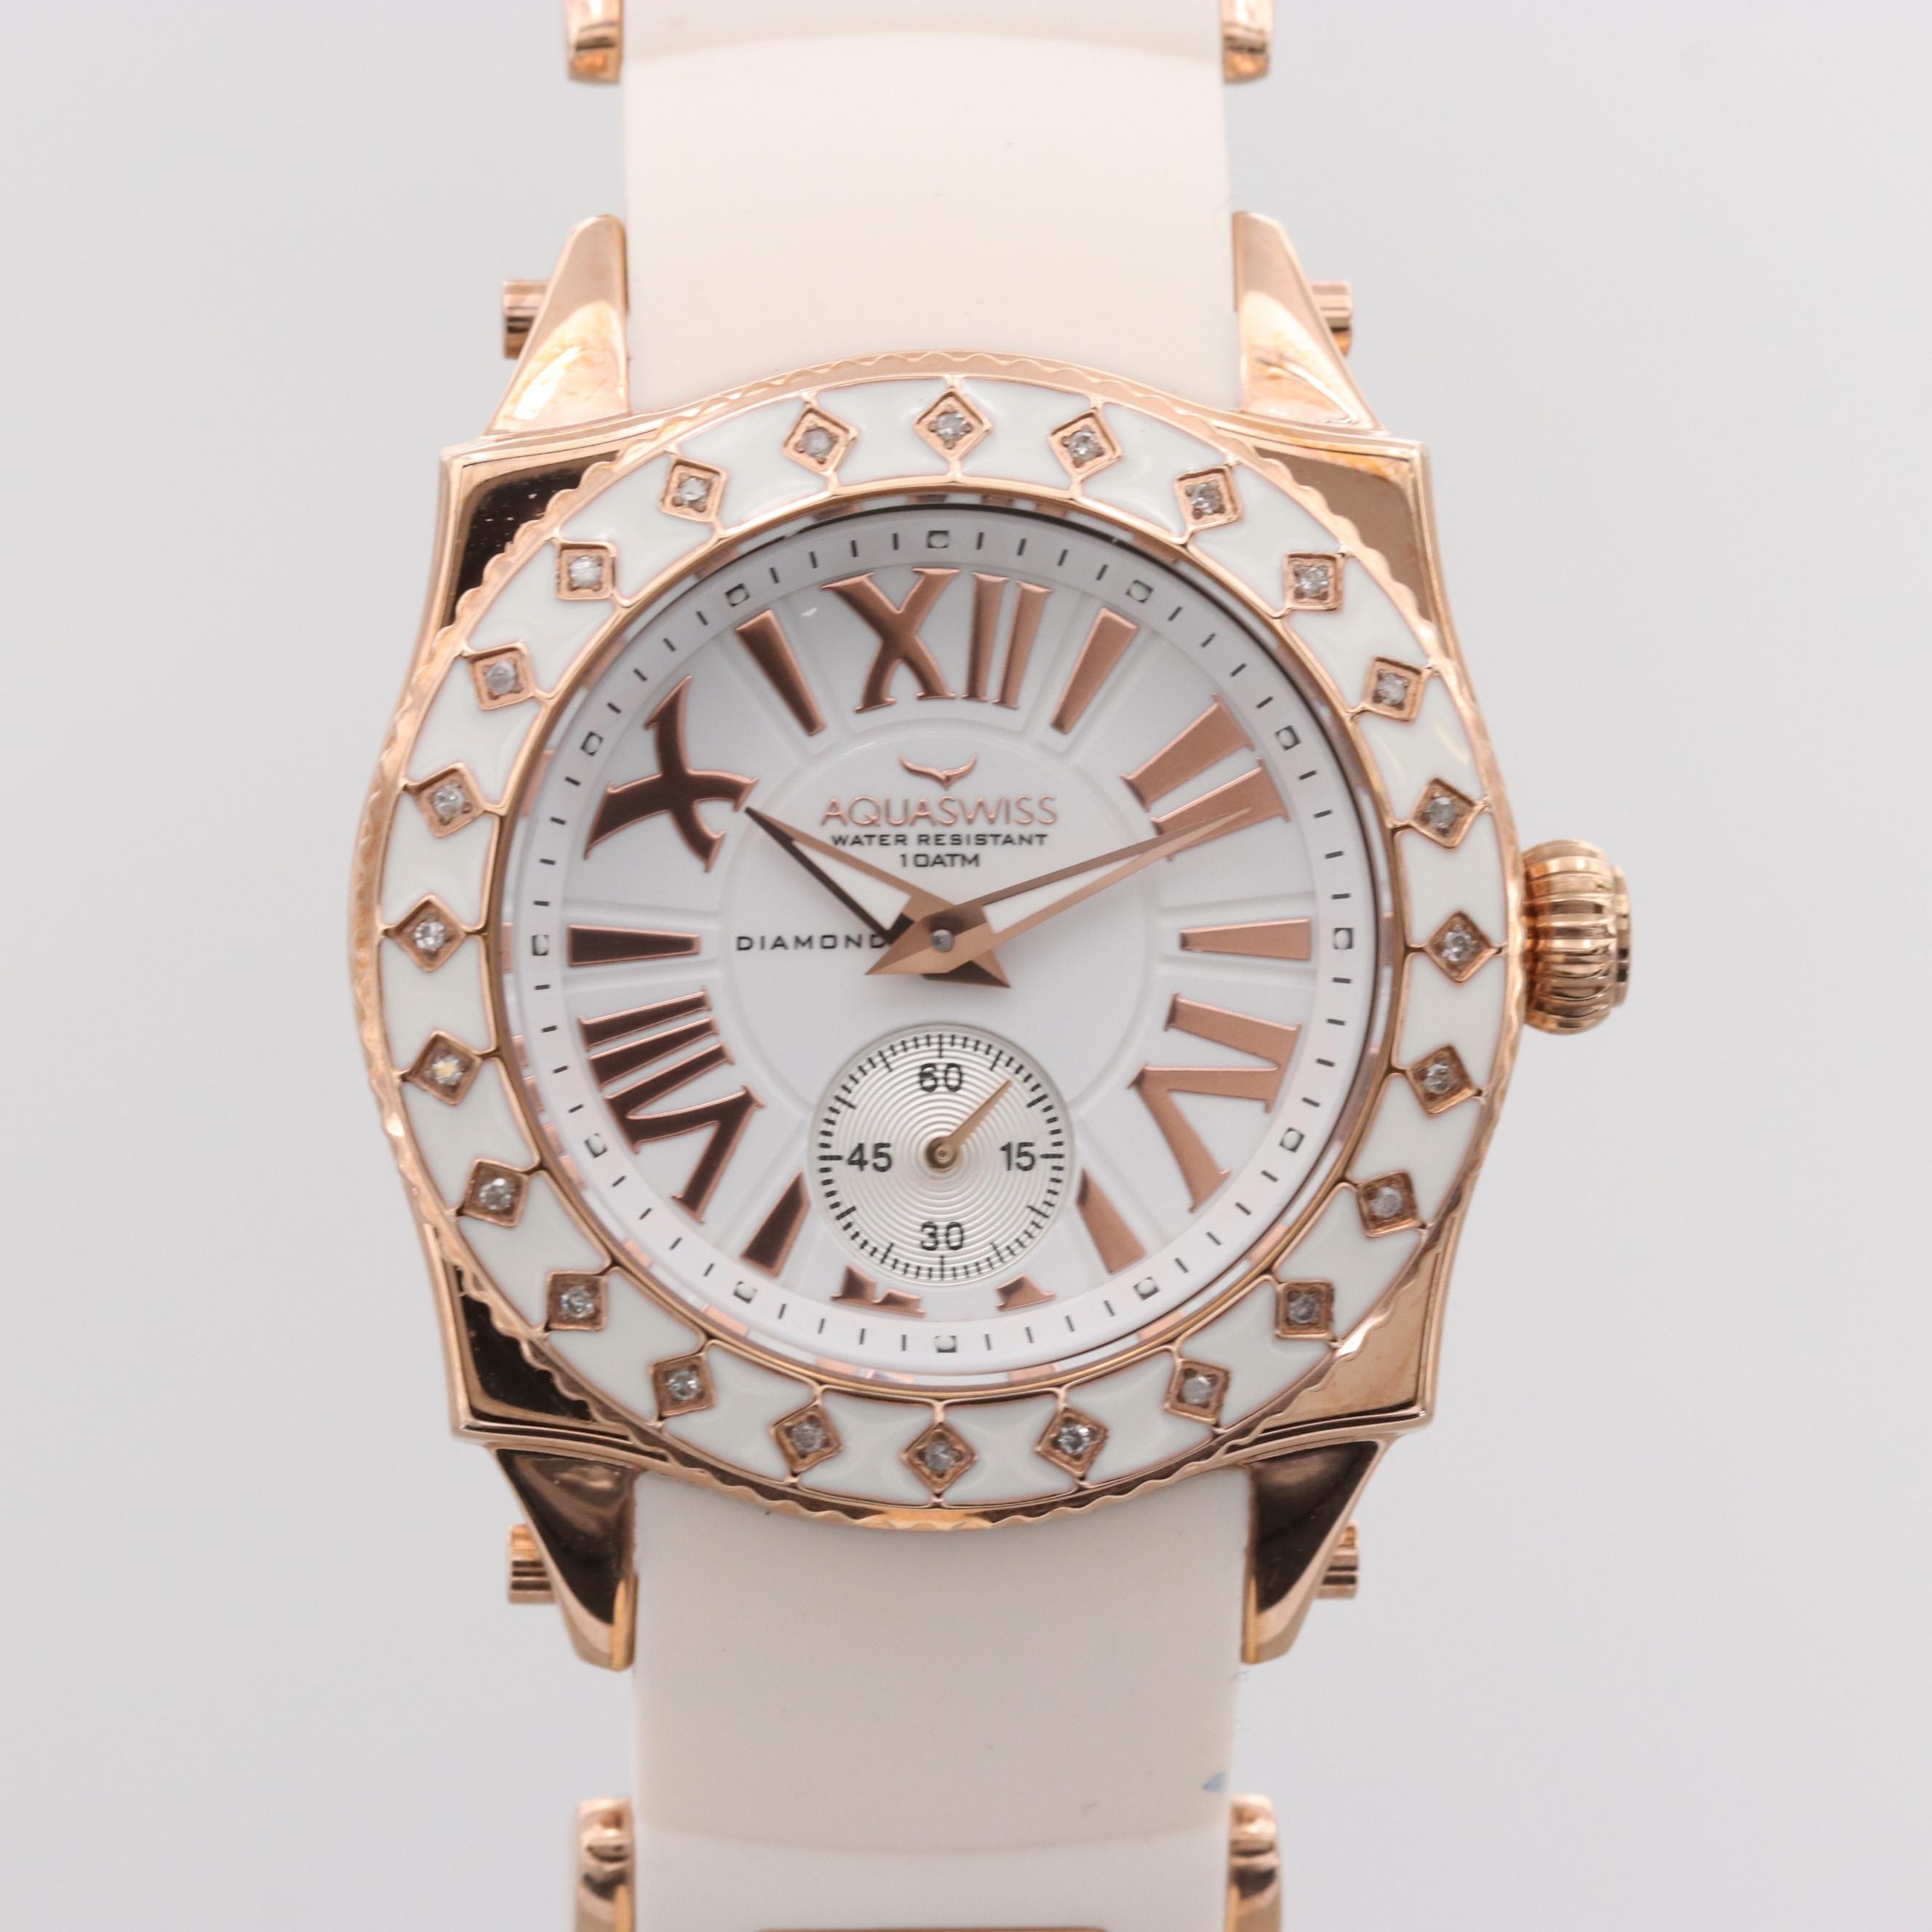 Aquaswiss Swissport 24 Rose Gold Tone Quartz Wristwatch With Diamond Bezel